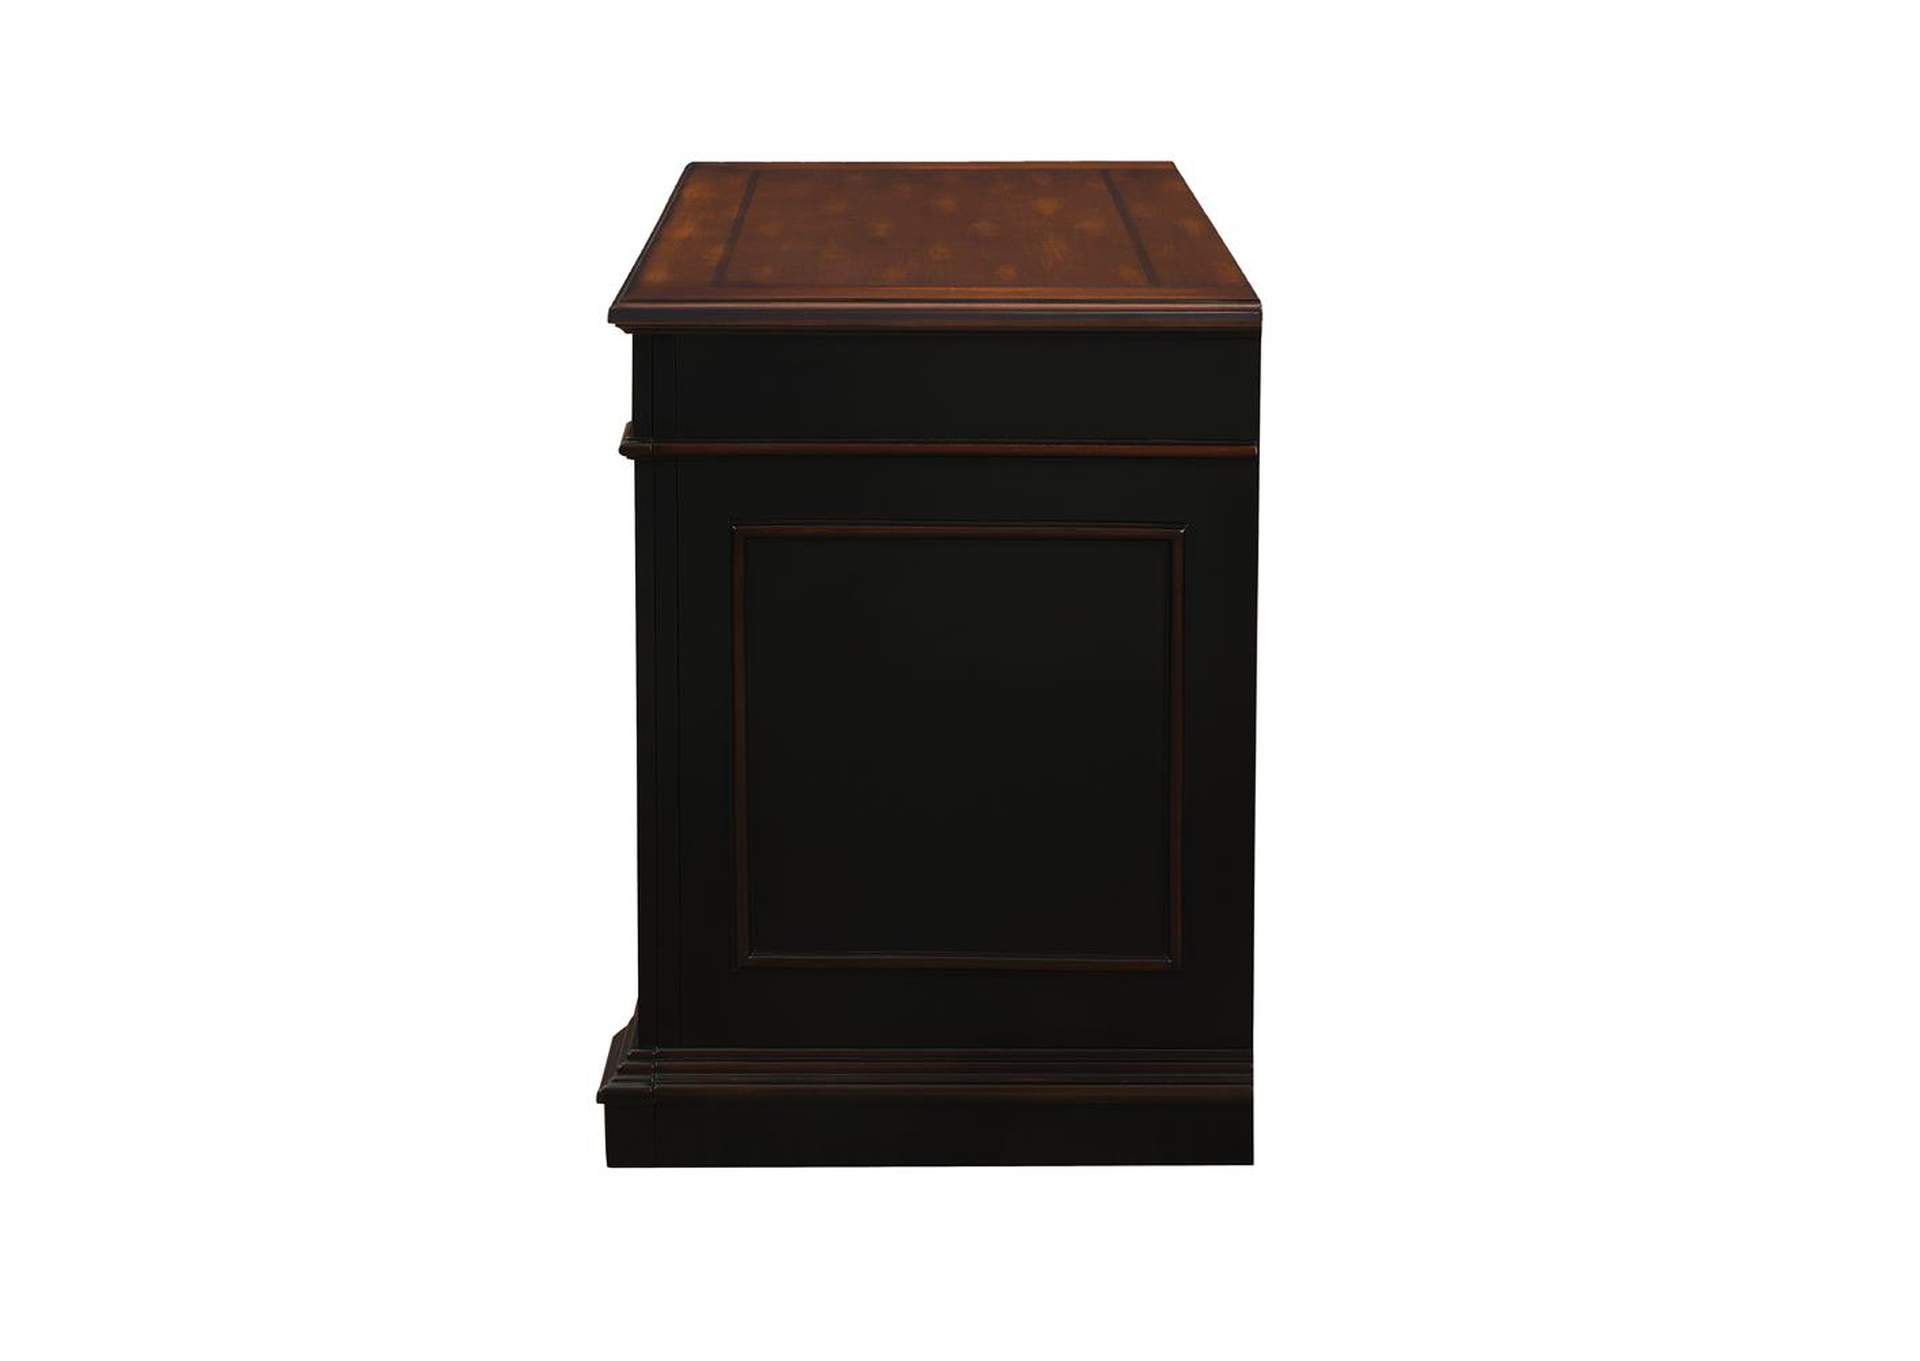 Eerie Black Rowan Traditional Black and Espresso File Cabinet,Coaster Furniture